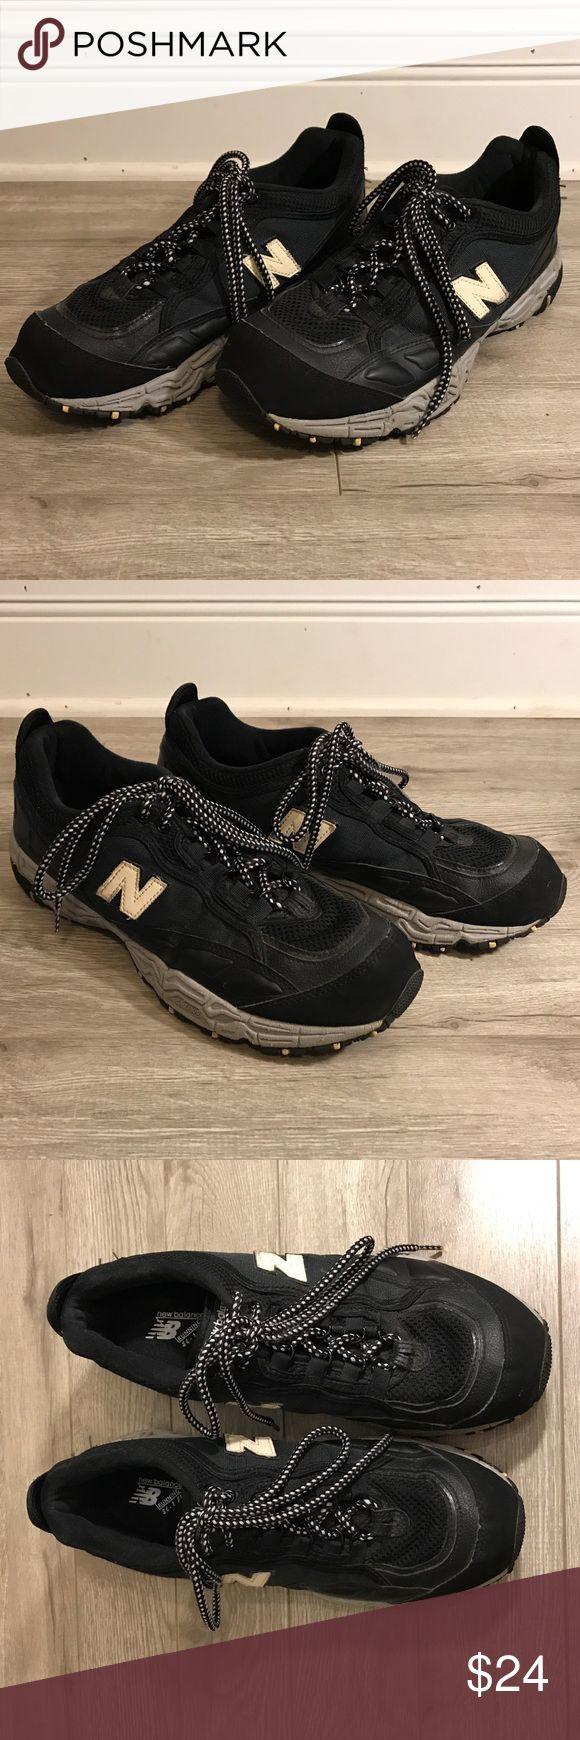 New balance running shoes size 11.5 black All terrain new balance running shoes in good condition New Balance Shoes Sneakers